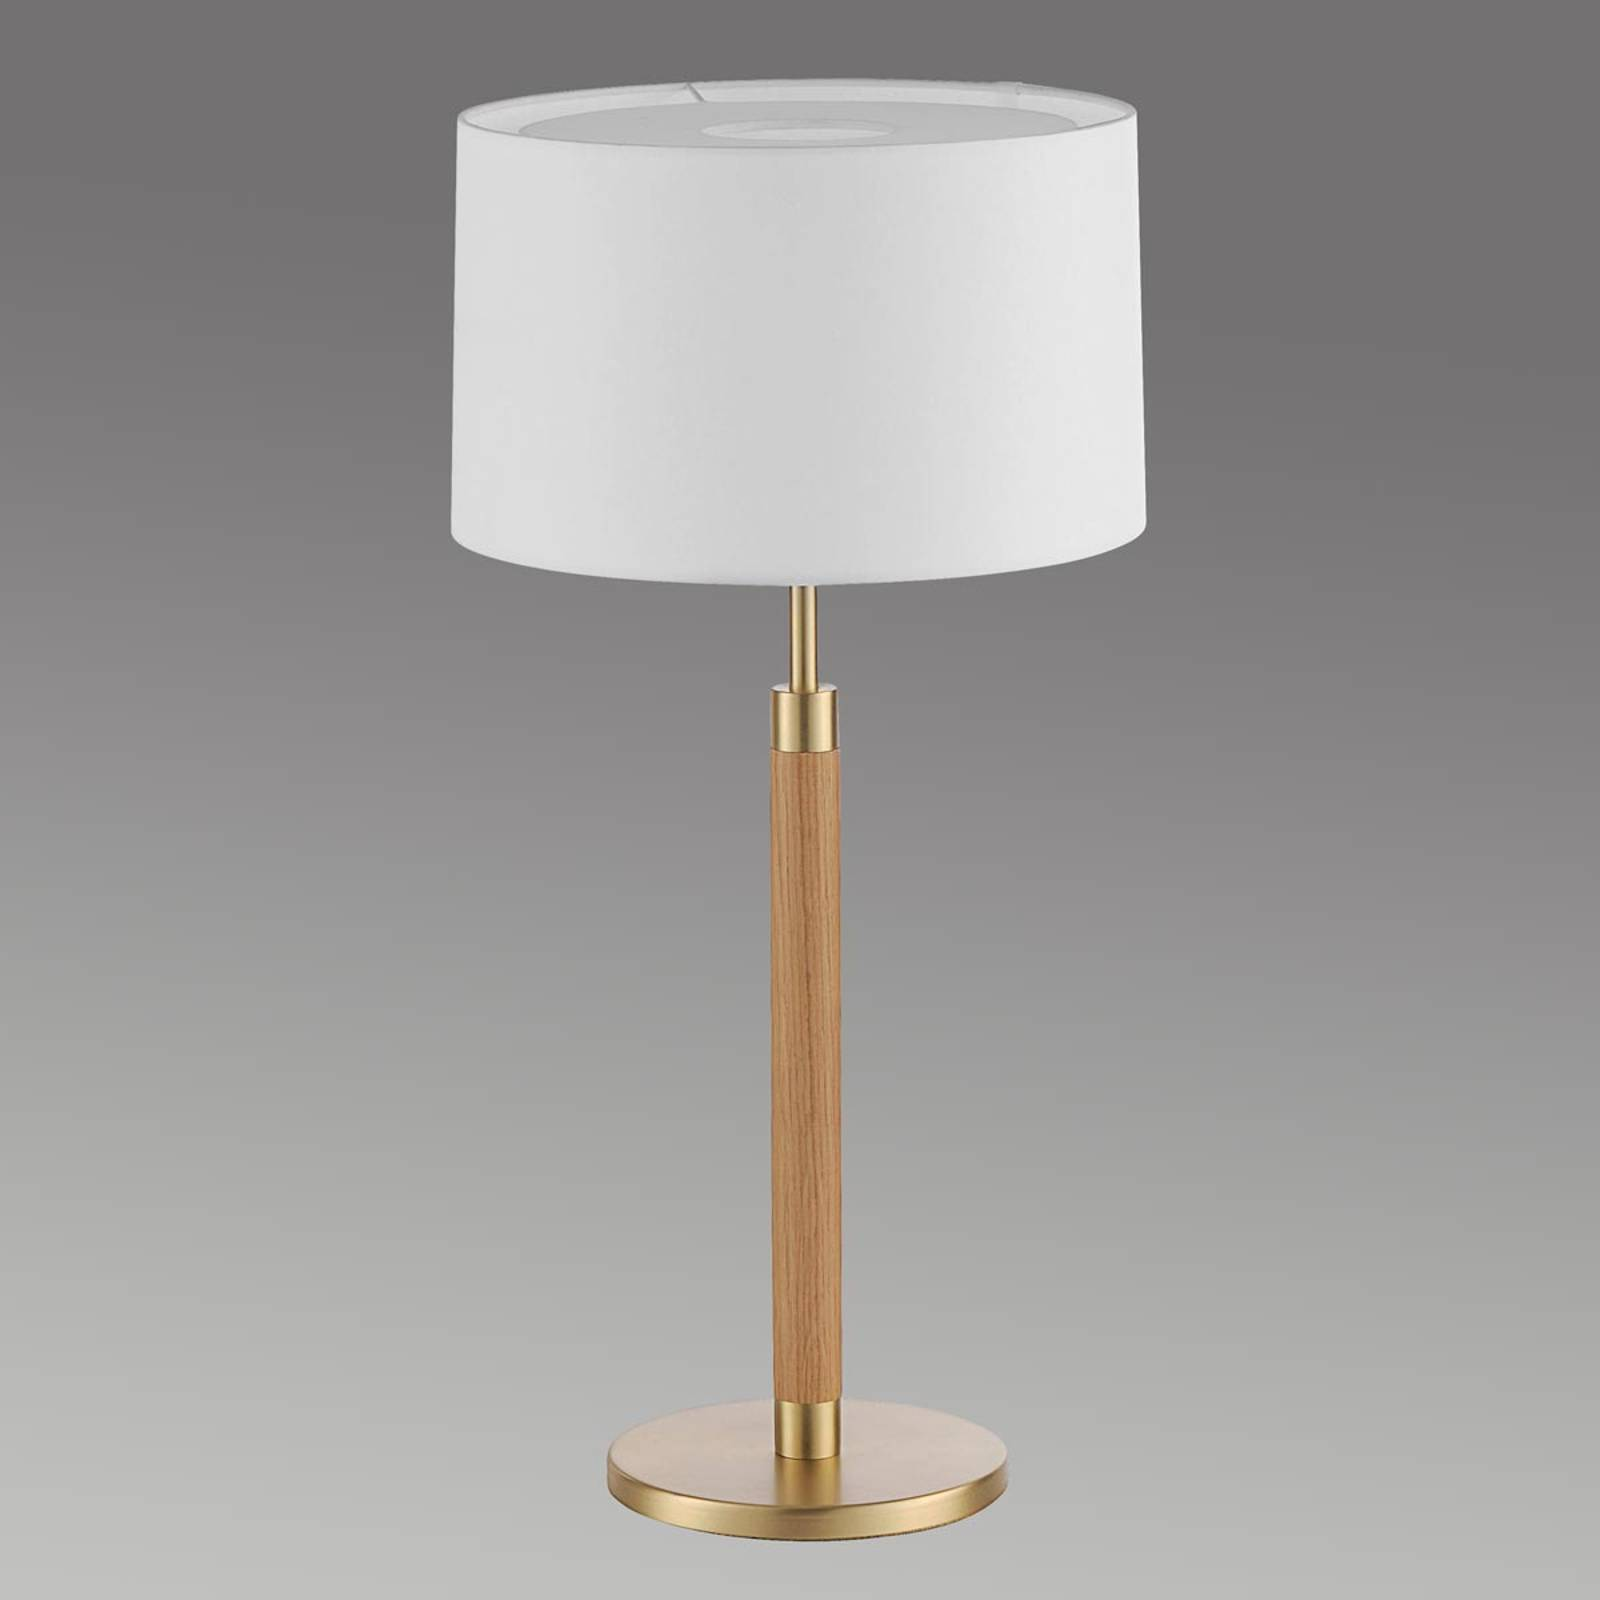 Wooden table lamp Lignum, chintz lampshade, brass from Hufnagel